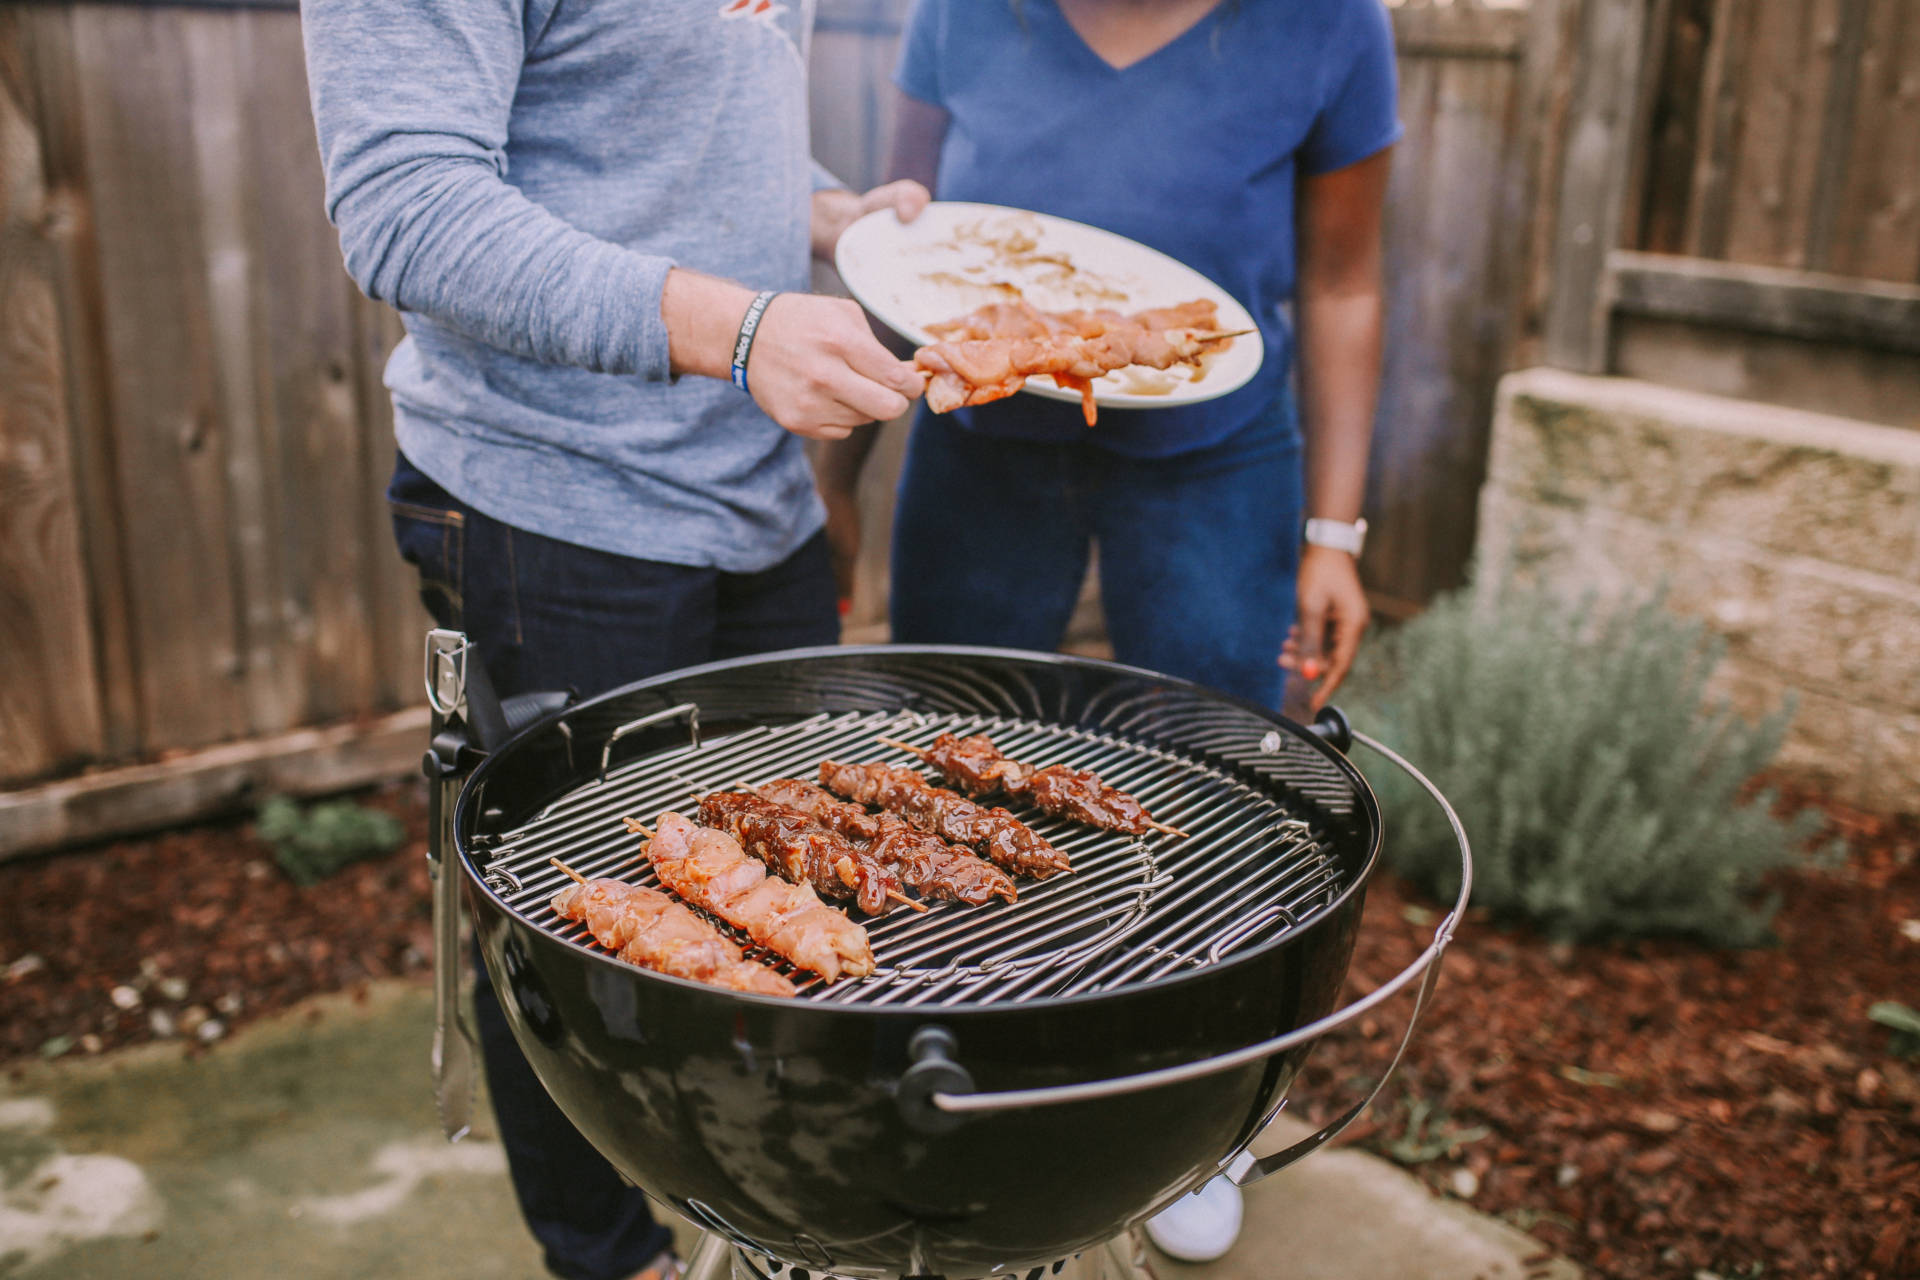 Ruthie Ridley Blog- Kingsford Home Gating For Super Bowl